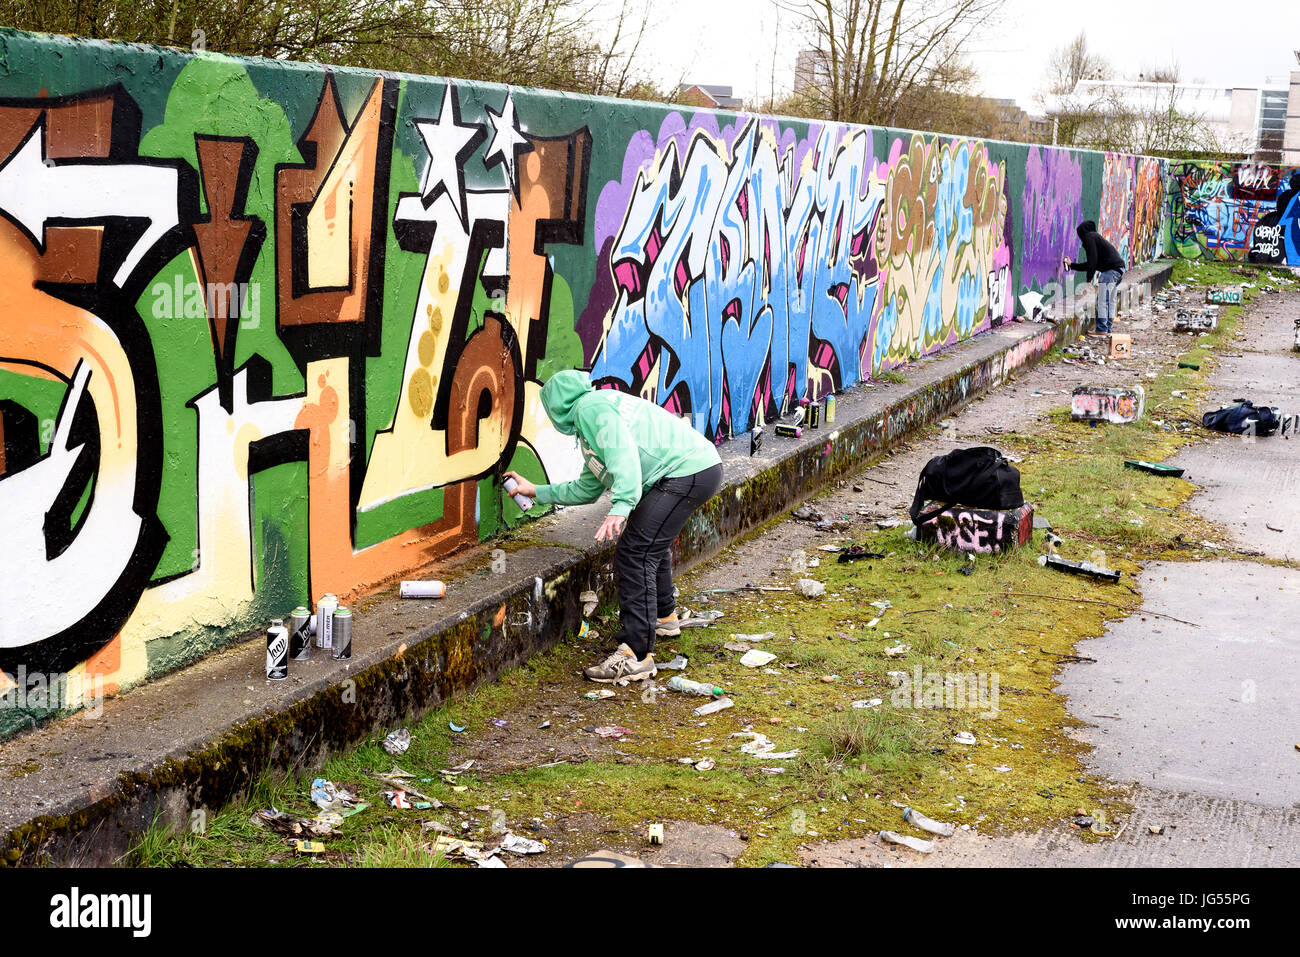 Chelmsford England 22Nd March 2017 Graffiti Artists Working On A Public Wall Spraying Paint To Create Urban Art The Walls Are Free For All To Paint